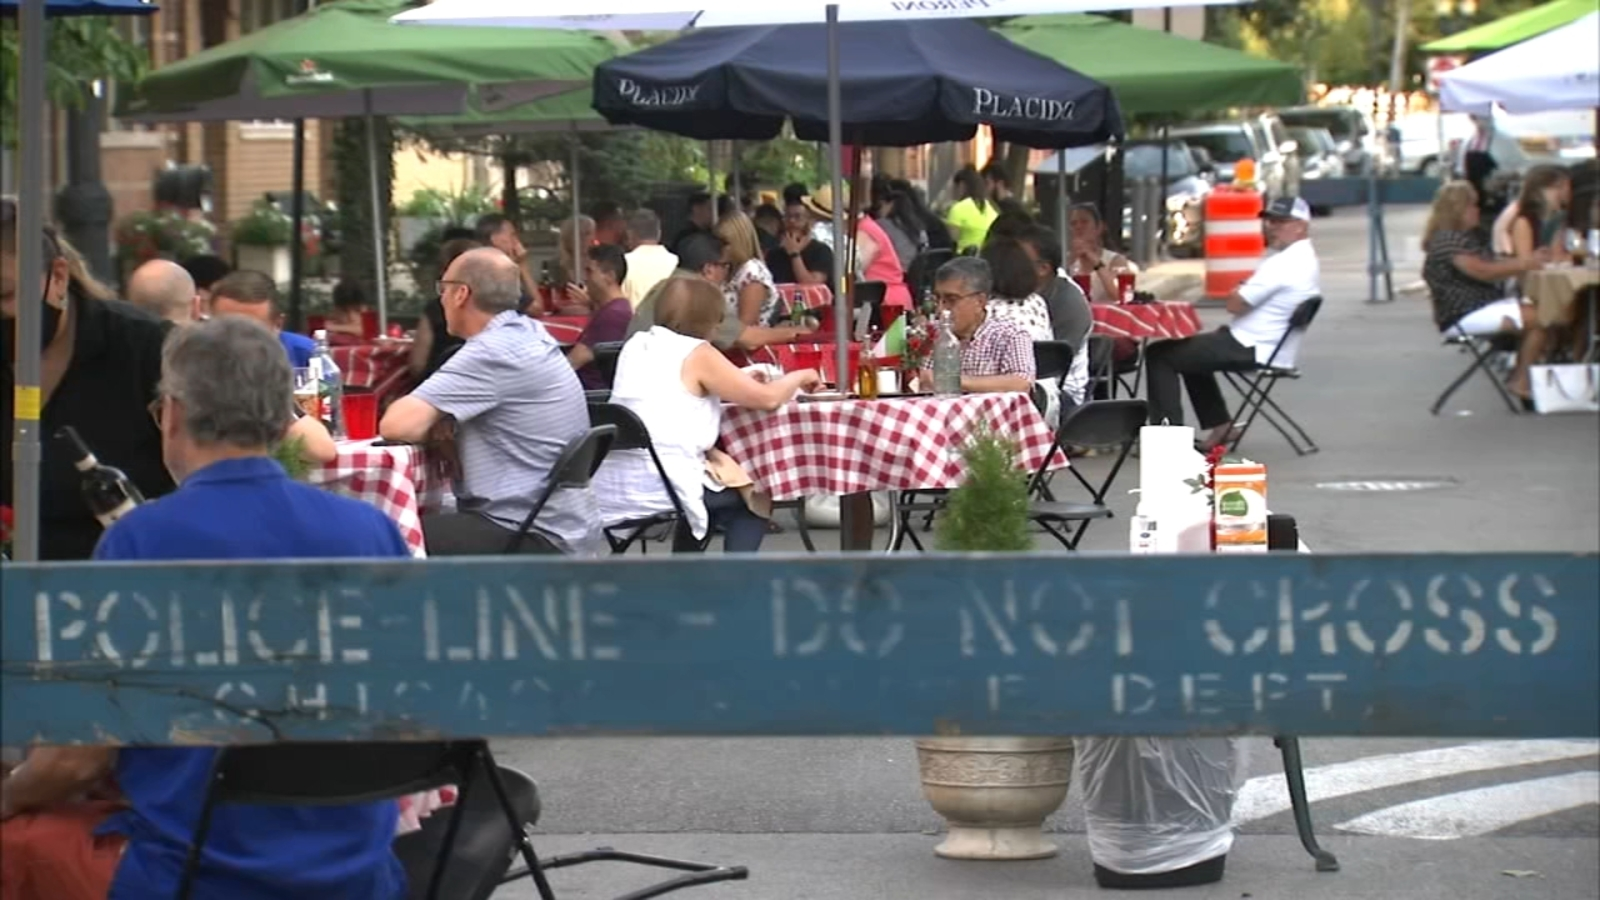 Chicago shared streets dining program expands to Wells, Clark in River North; Gold Coast closures extend to 7 days a week